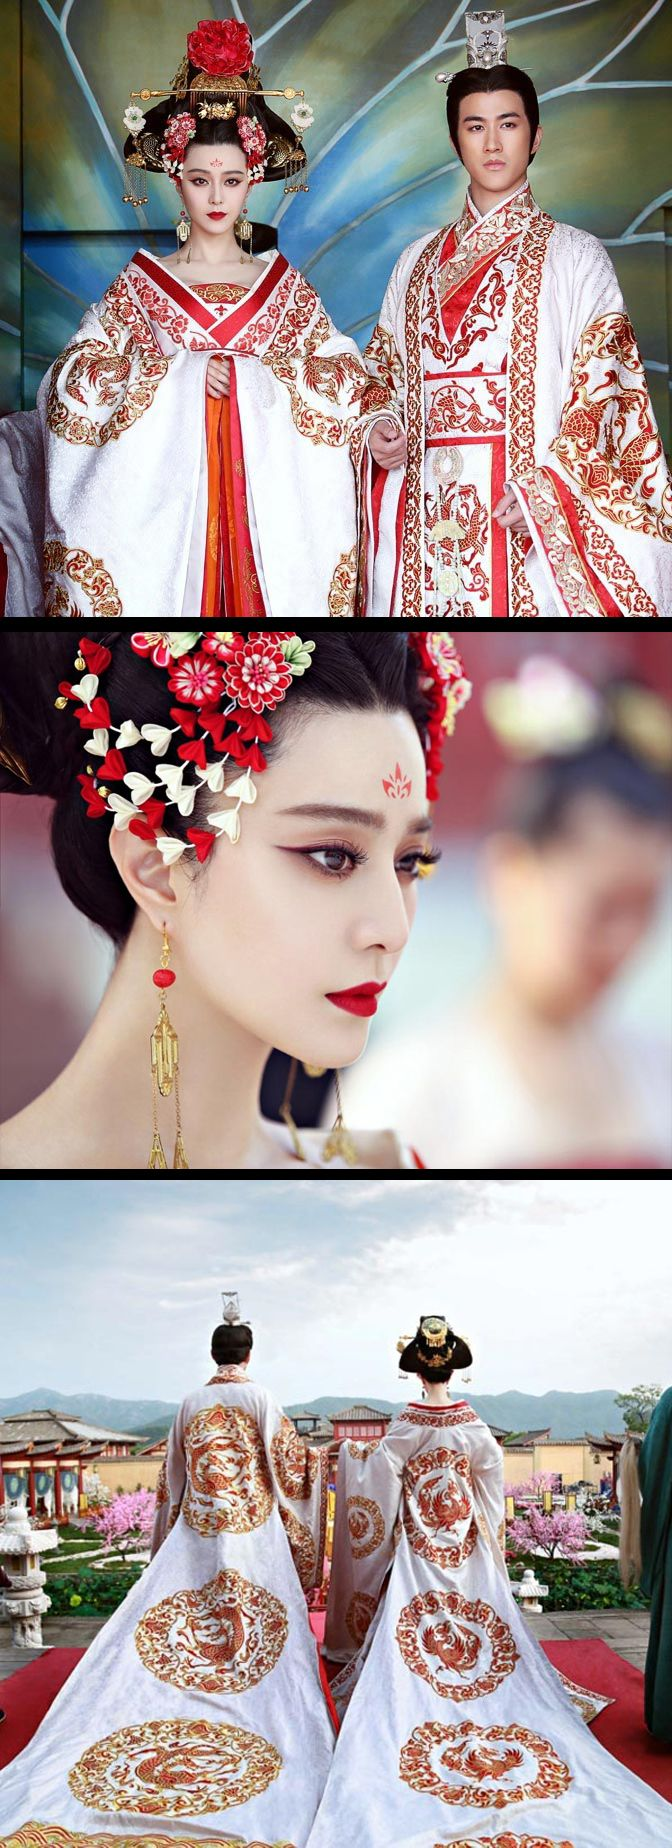 'The Empress of China' ~ Tang Dynasty? If I know my history correct … Really want to watch this! Someone sub it please, I'll even accept a dubbed version!! Lol